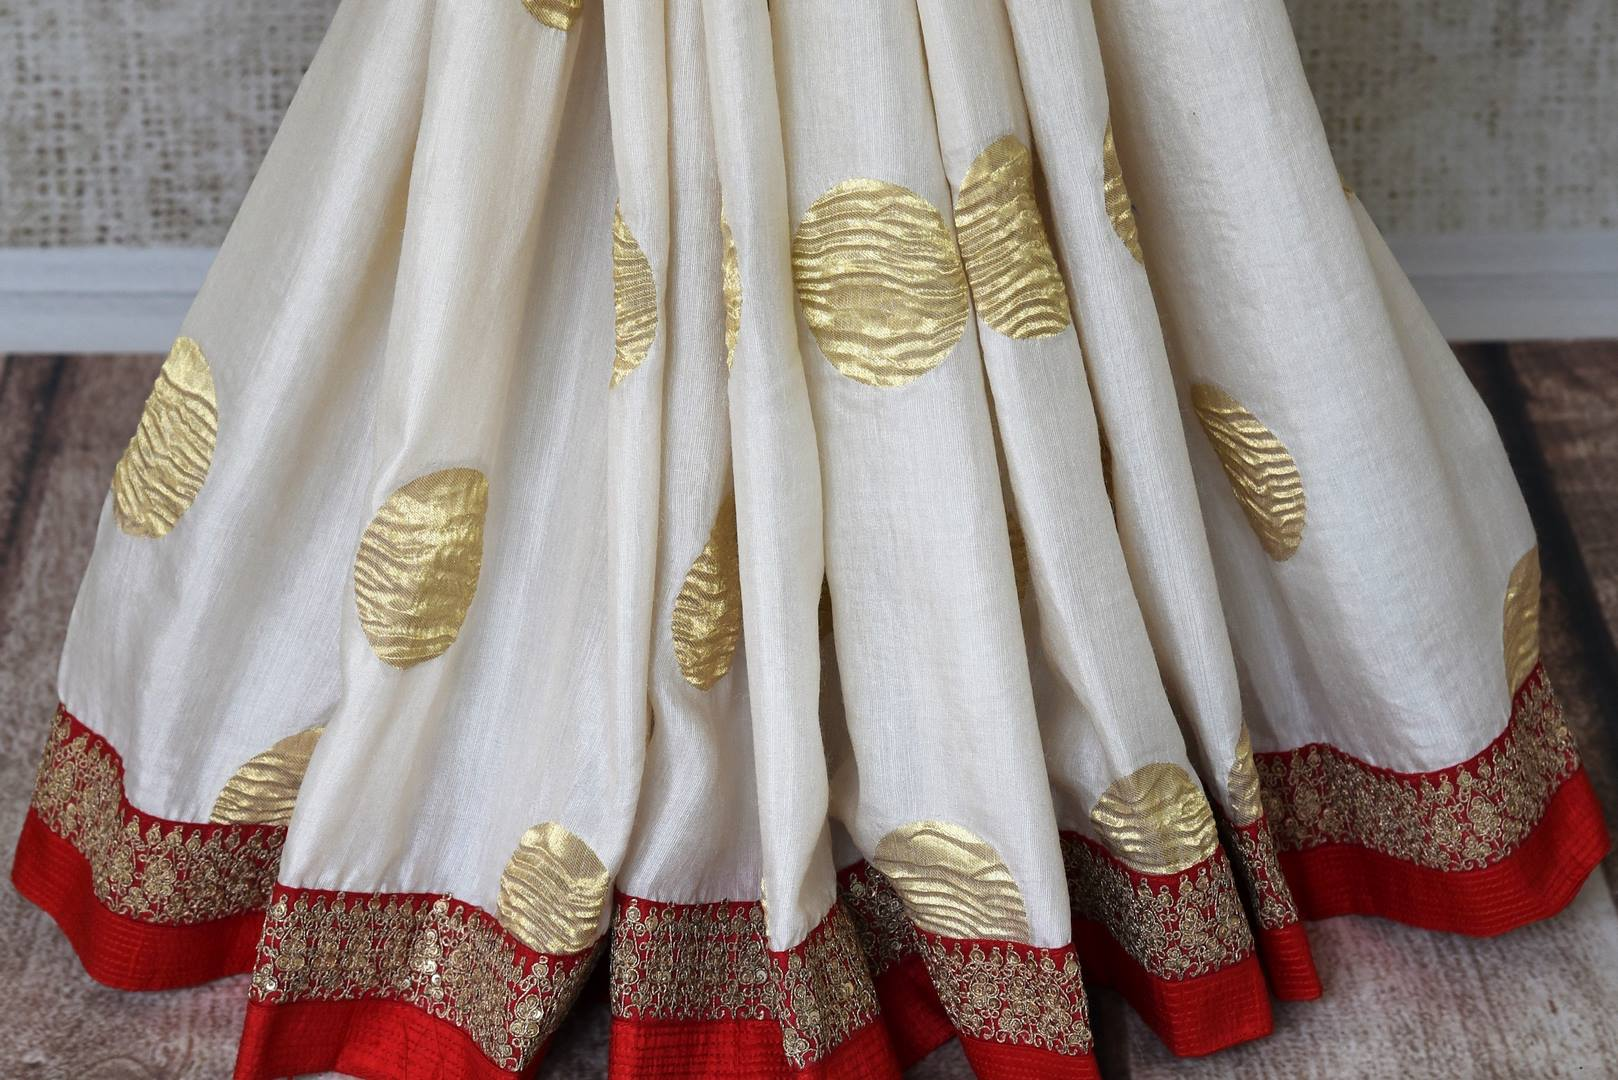 Buy white silk sari with embroidered border online in USA. Shop exclusive Indian designer saris, handloom sarees, Banarasi saris, wedding sarees in USA at Pure Elegance clothing store. Explore a range of traditional Indian women clothing also available at our online store. Shop now.-pleats